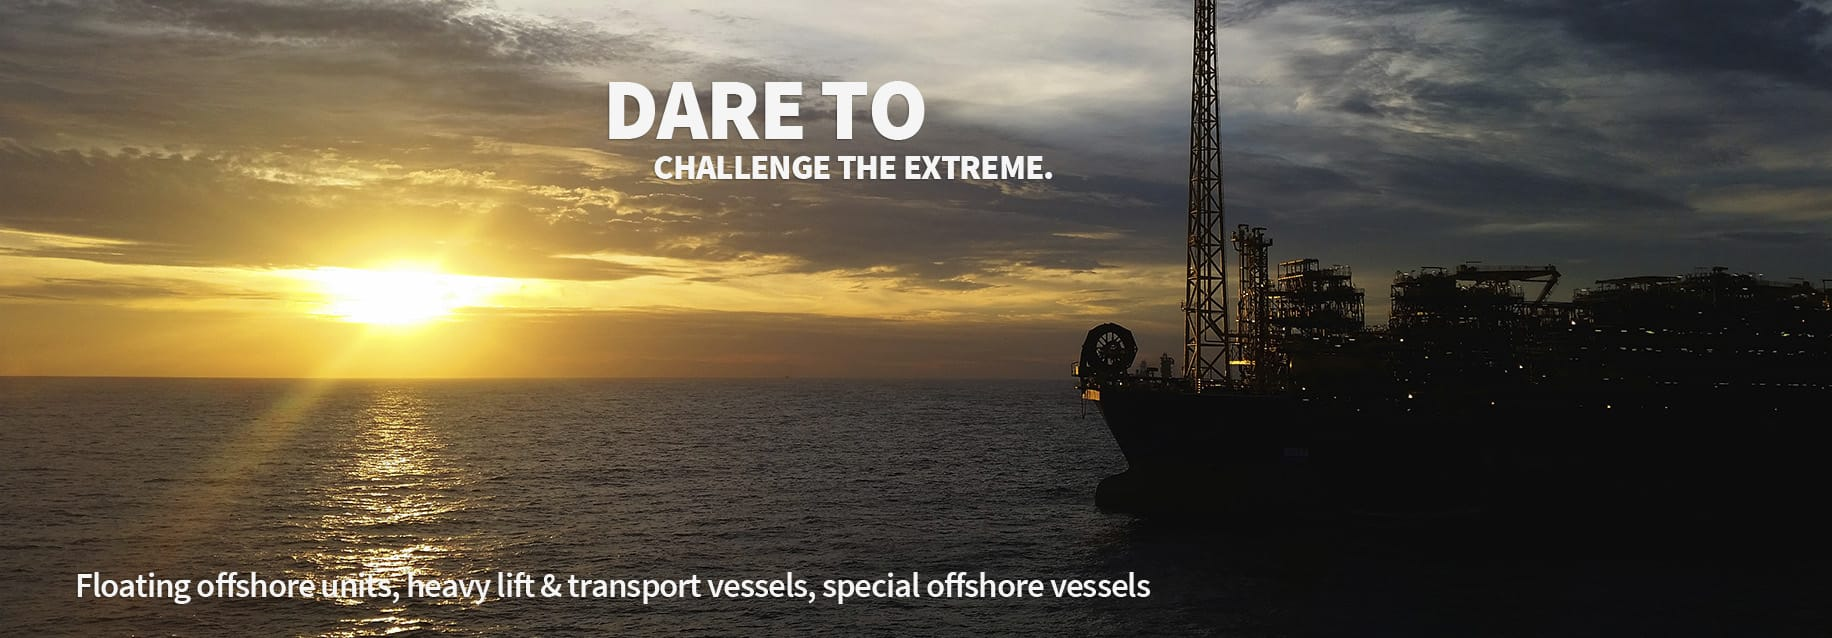 Dare to challenge the extreme